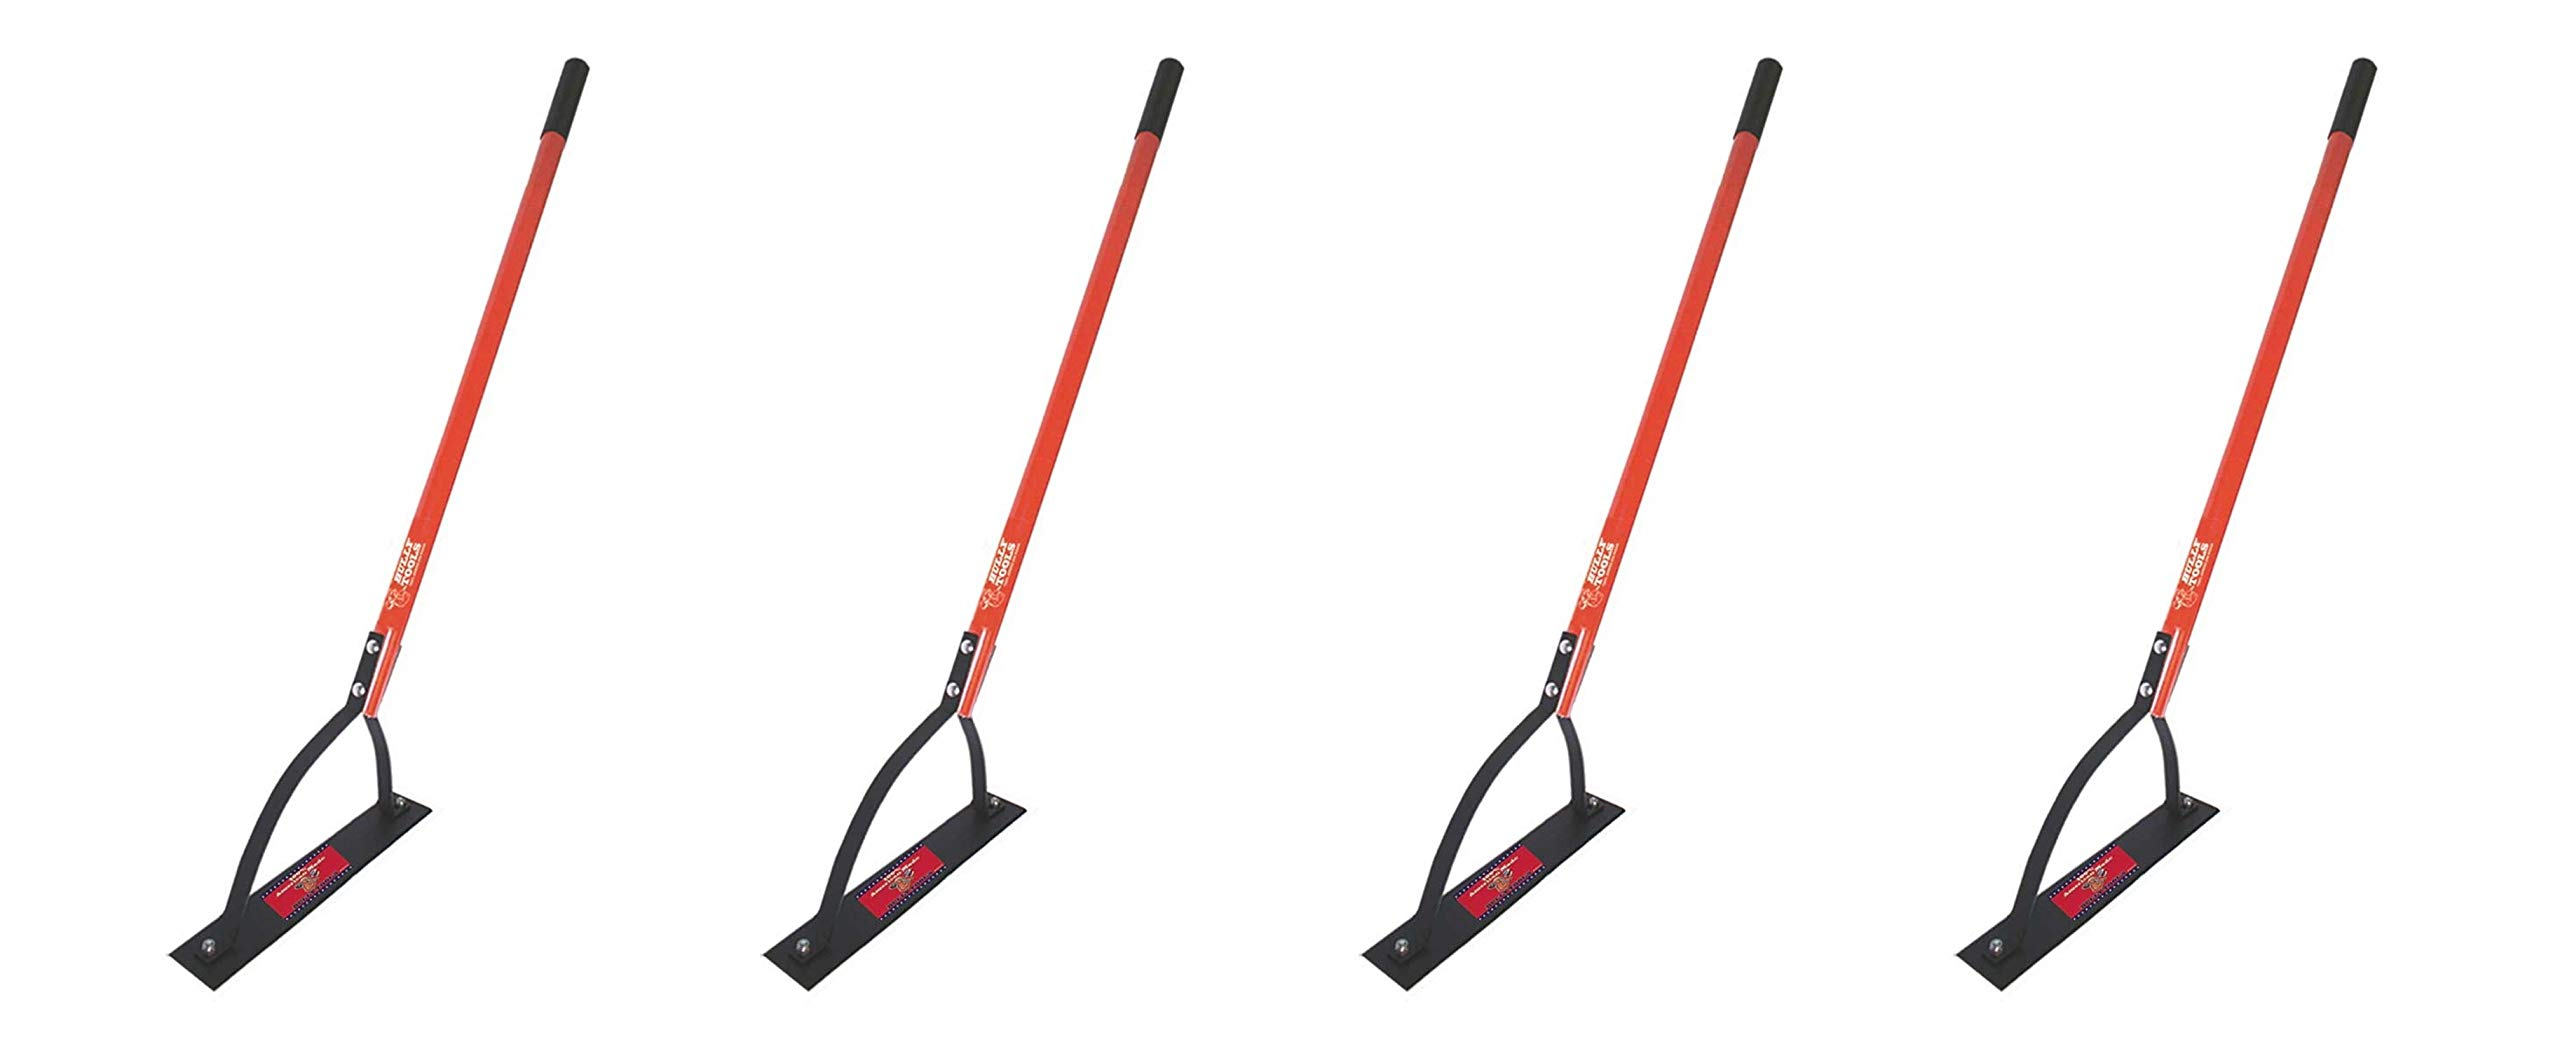 Bully Tools 92392 12-Gauge Weed Cutter with Fiberglass Handle (Pack of 4)